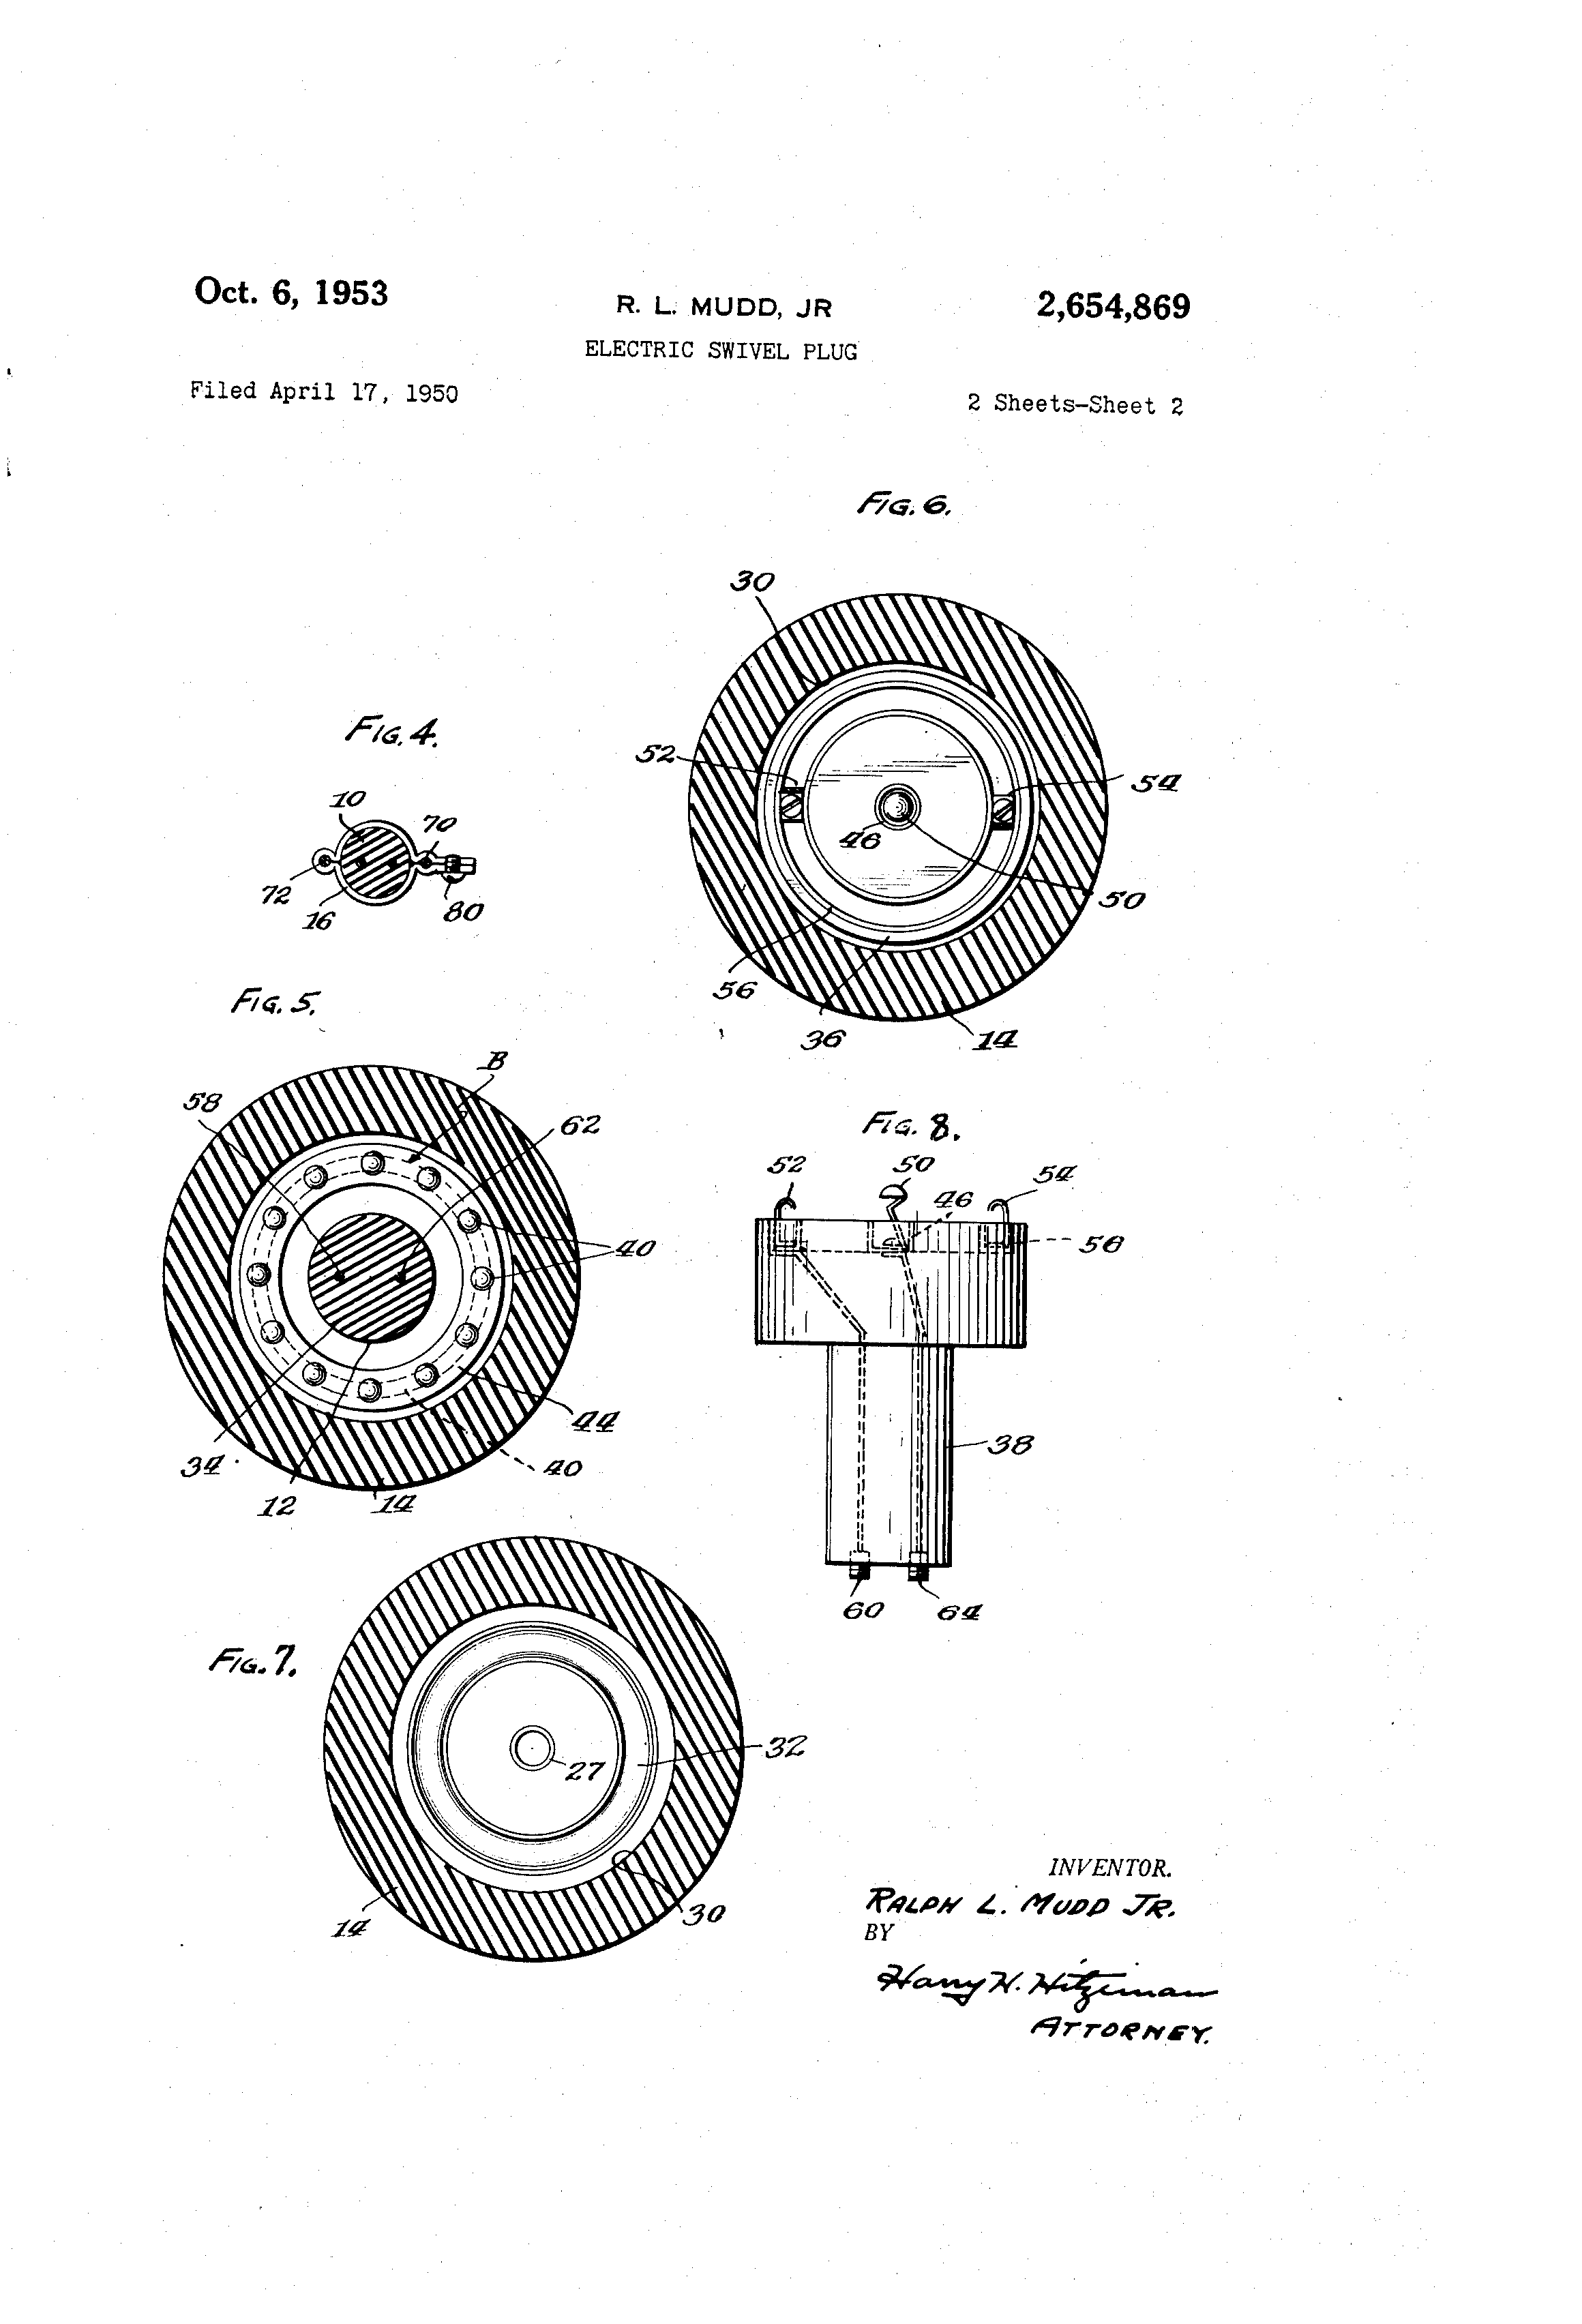 Enclosure For Wiring Devices Google Patents On Wire A Three Way Outlet Patent Us2654869 Electric Swivel Plug